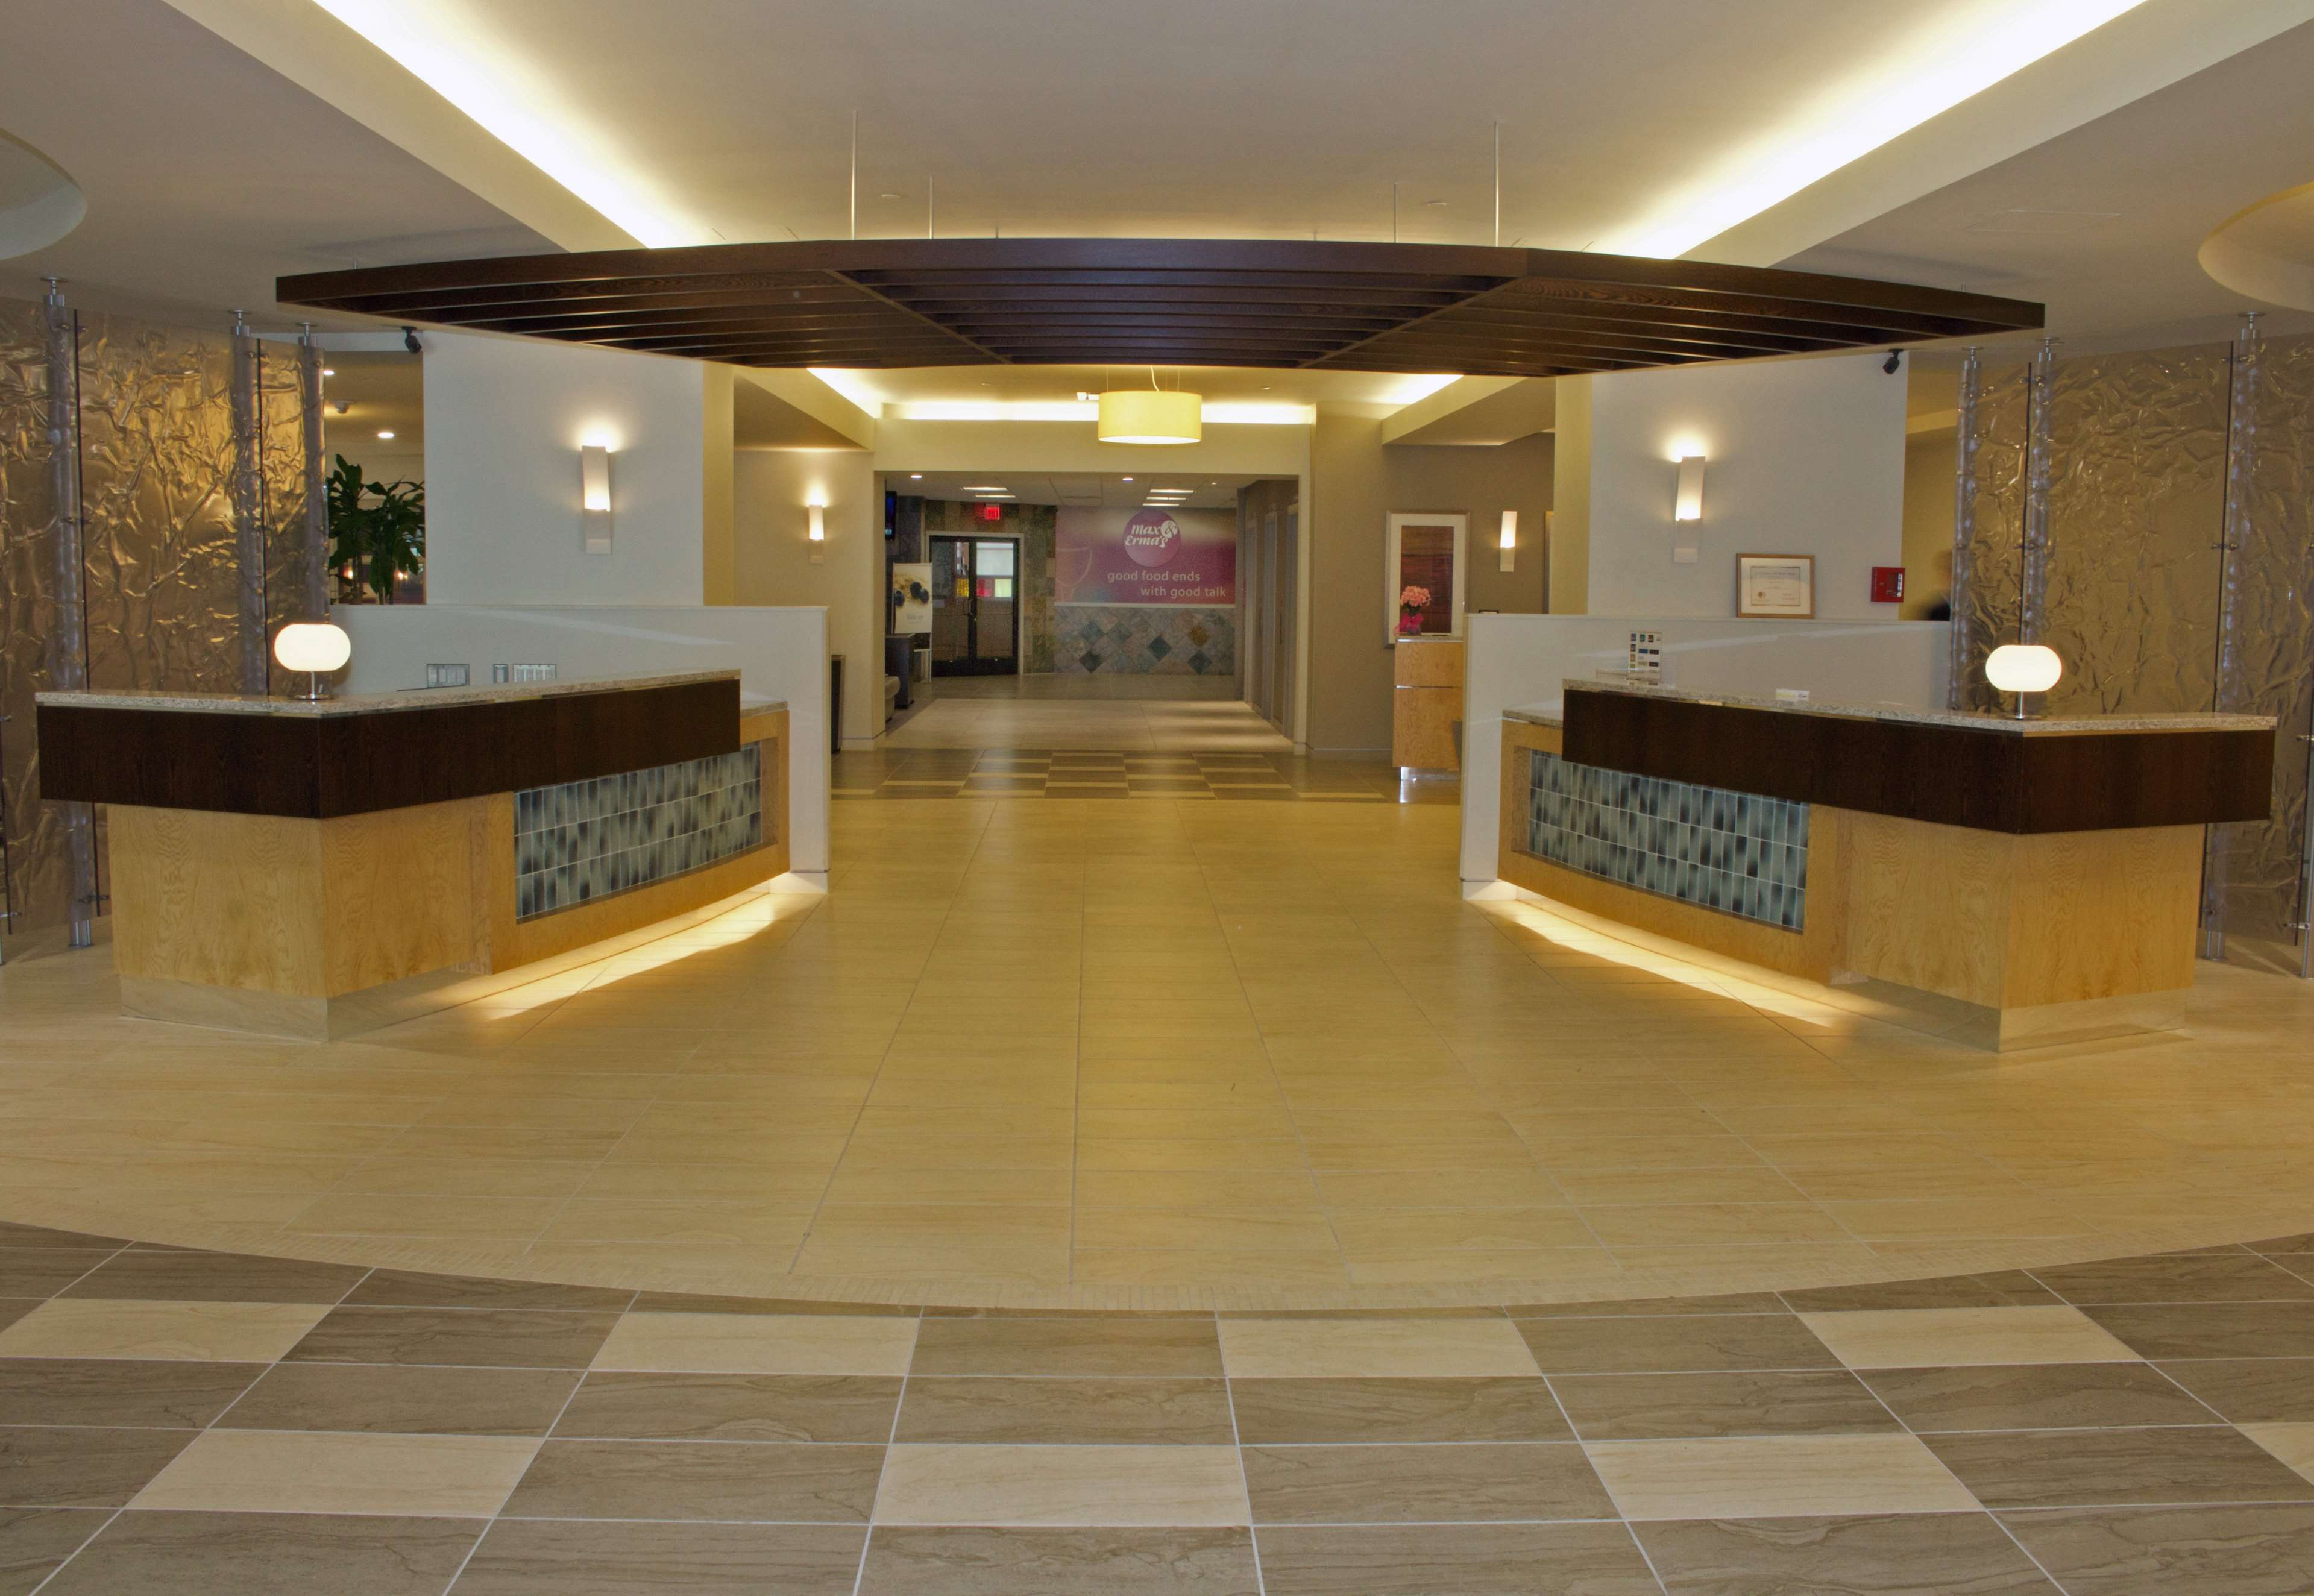 DoubleTree by Hilton Hotel Virginia Beach image 3